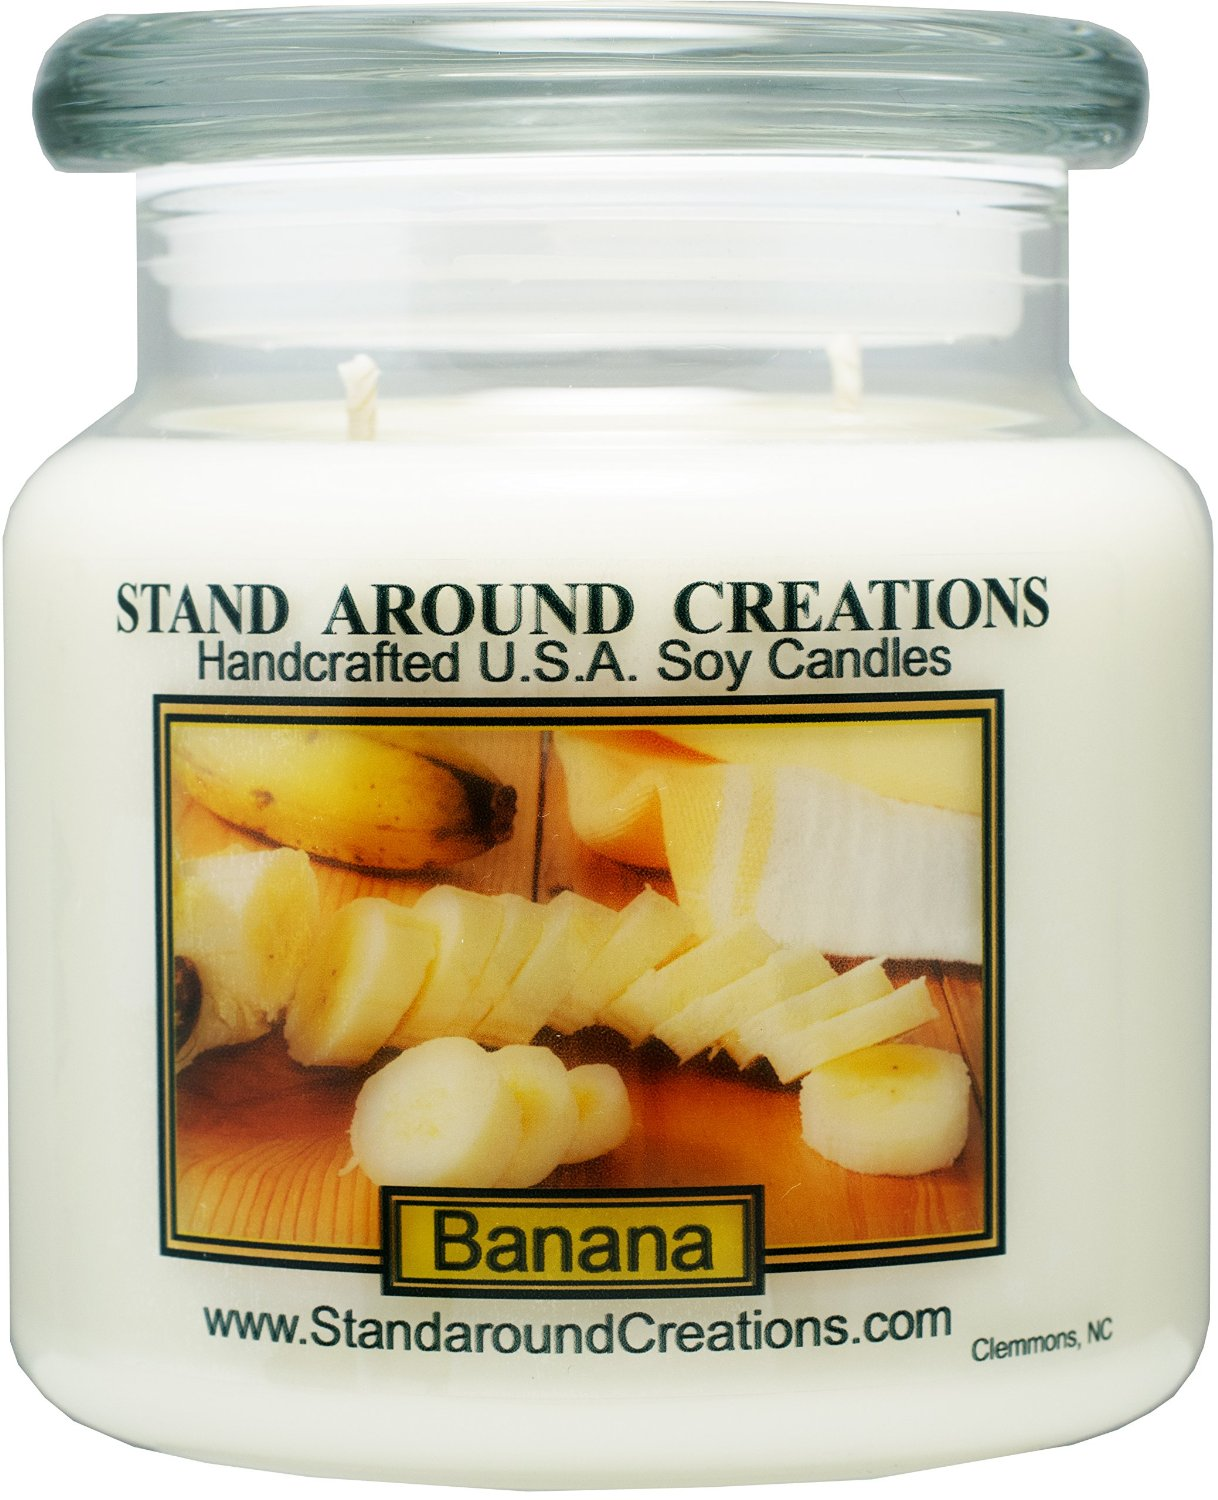 Premium 100% Soy Apothecary Candle - 16 oz Double Wicked- Banana : A true, fresh, ripe banana scent.